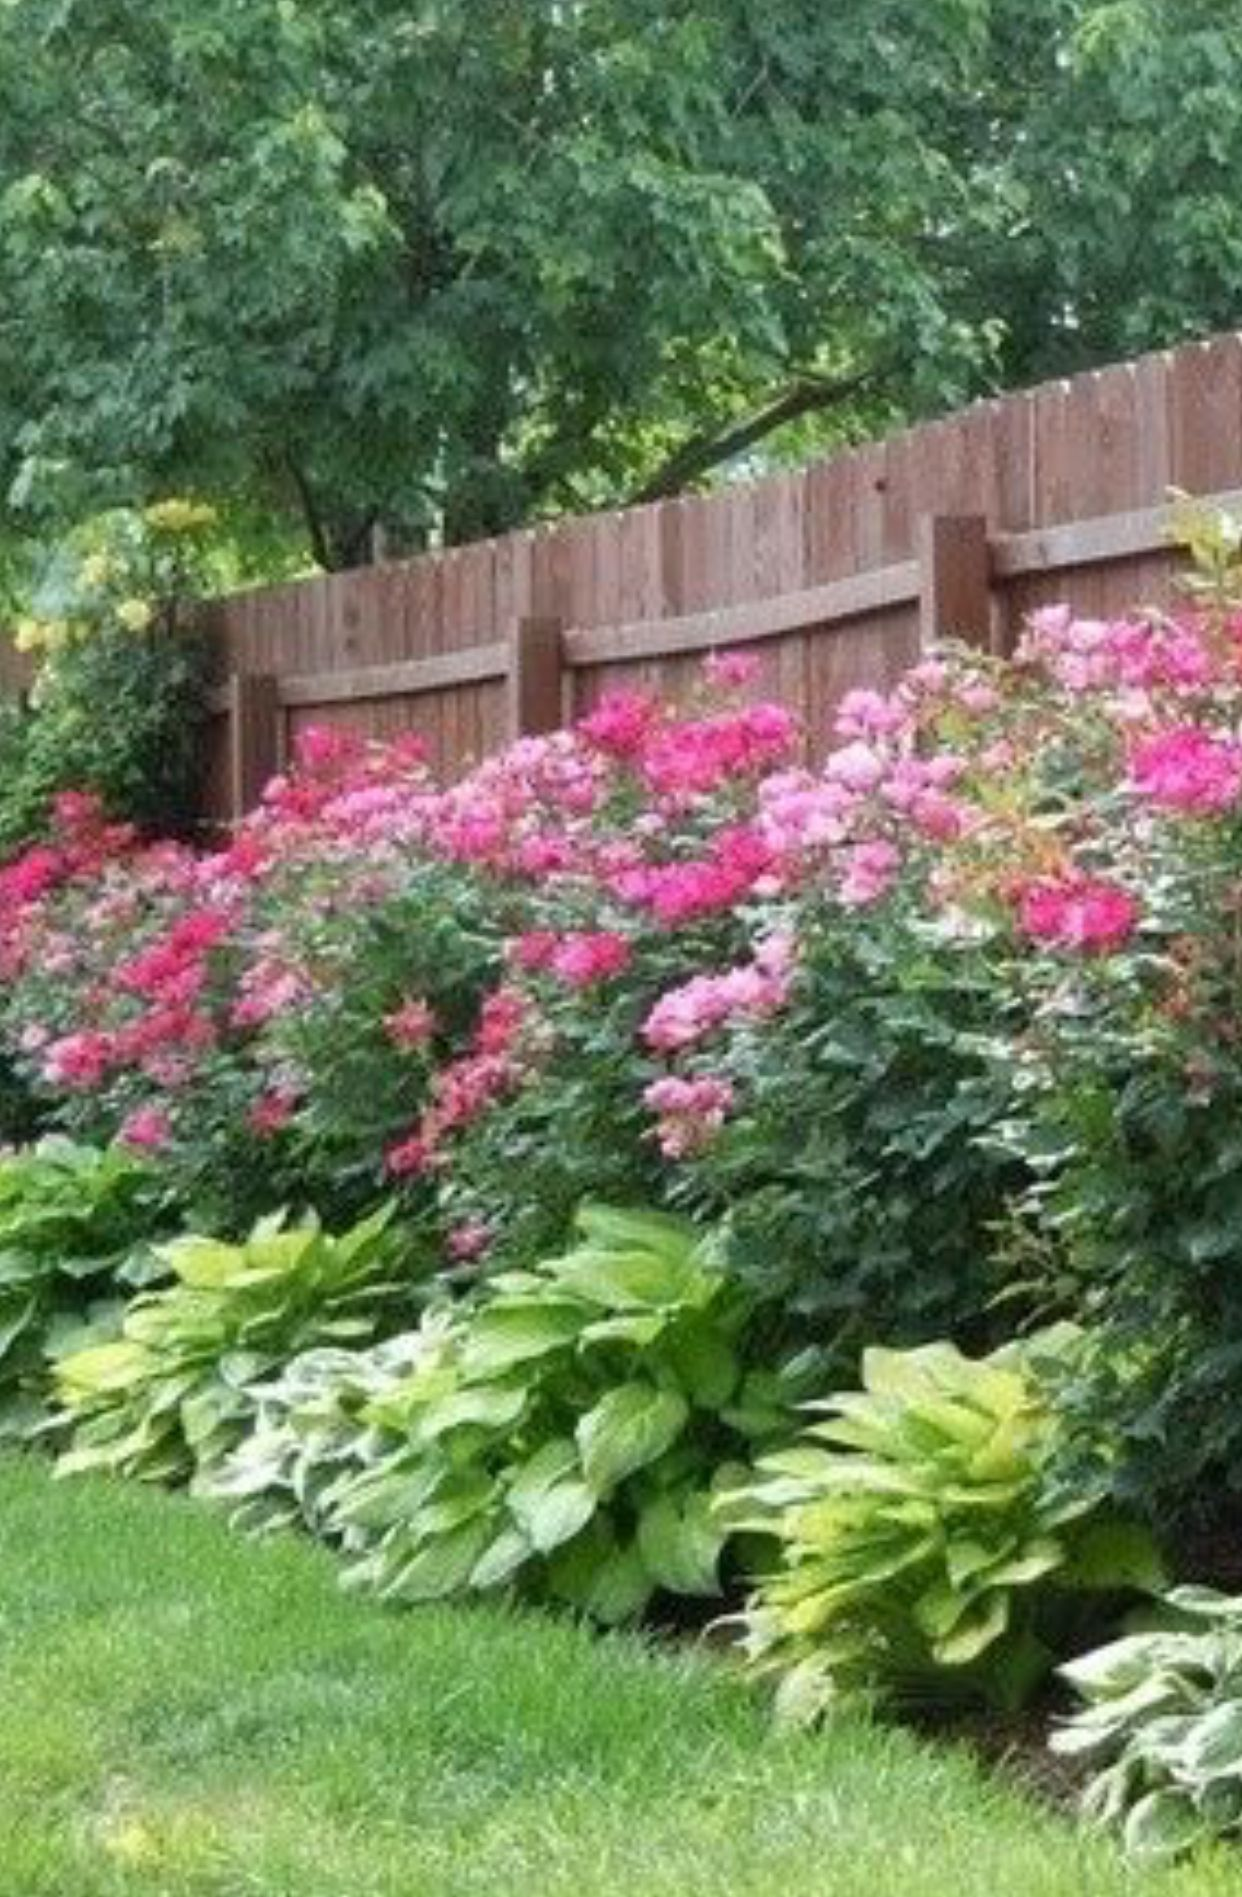 Knockout Roses And Hostas Garden Fence Border Row Extremely Simple Low Maintenance But Very